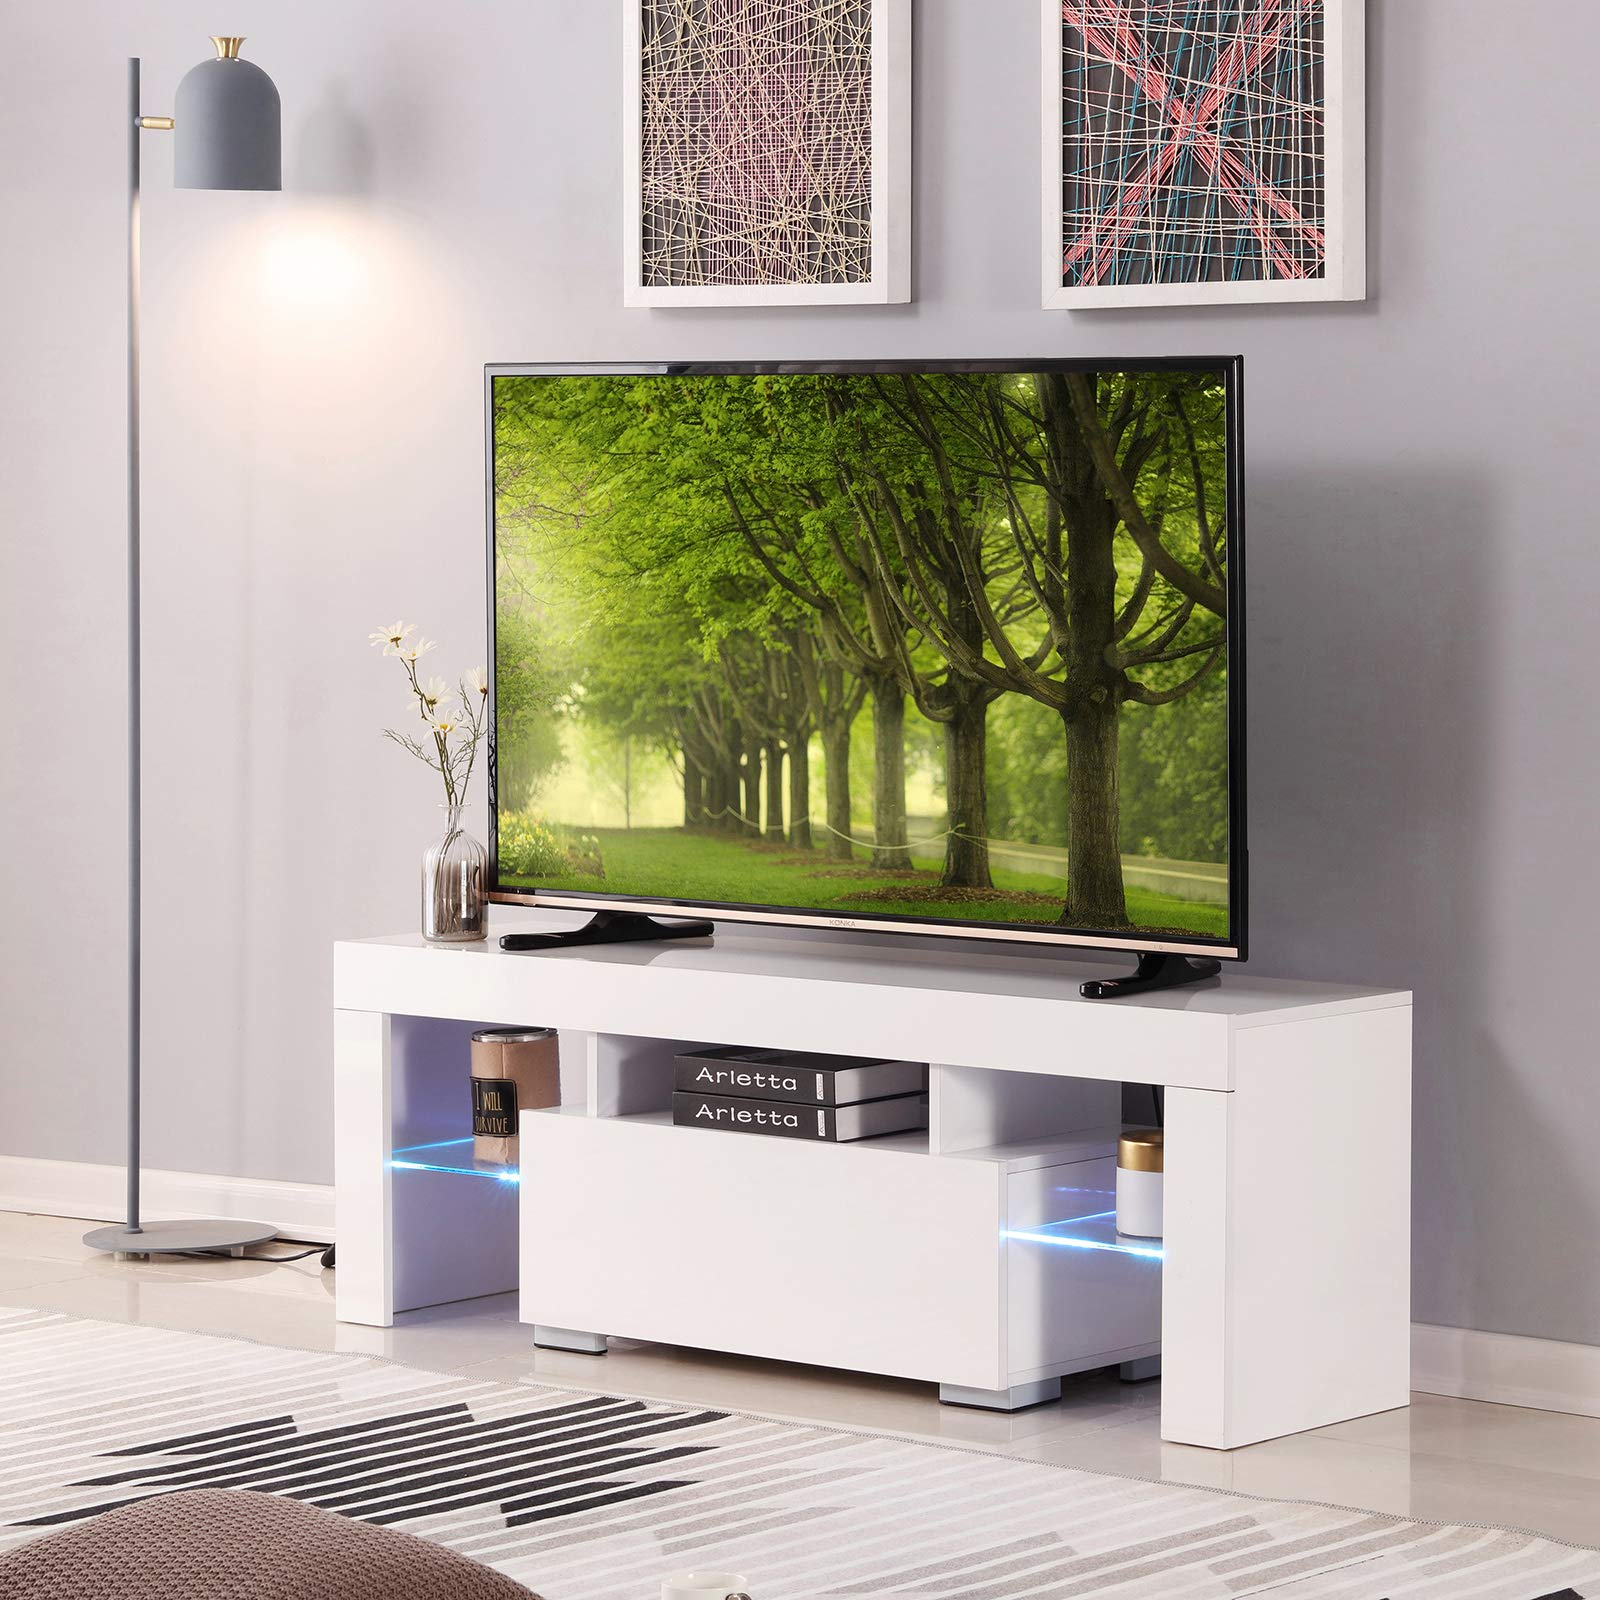 4-EVER 51'' TV Stand Cabinet LED Light Shelves Drawer Remote Control TV Stand Console Table Flat Screens High Gloss White